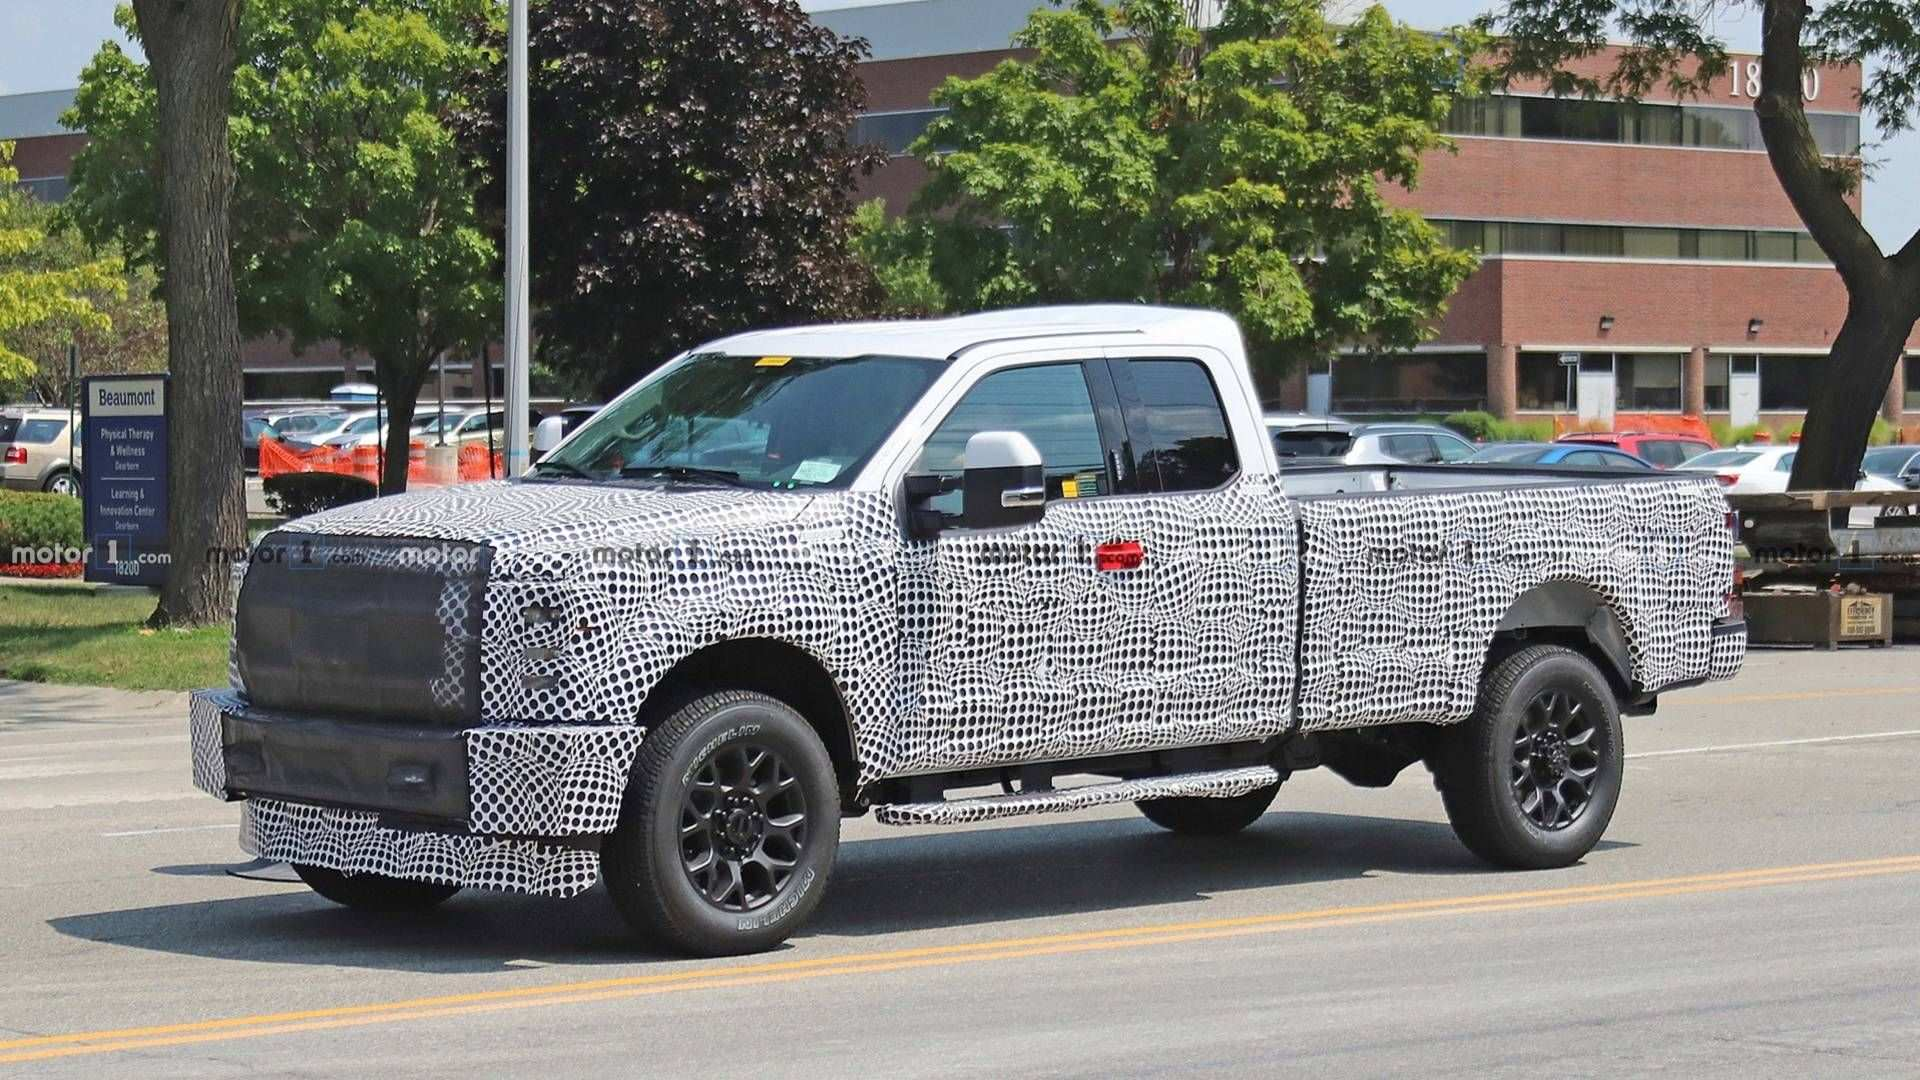 59 Great 2020 Spy Shots Ford F350 Diesel Exterior and Interior for 2020 Spy Shots Ford F350 Diesel